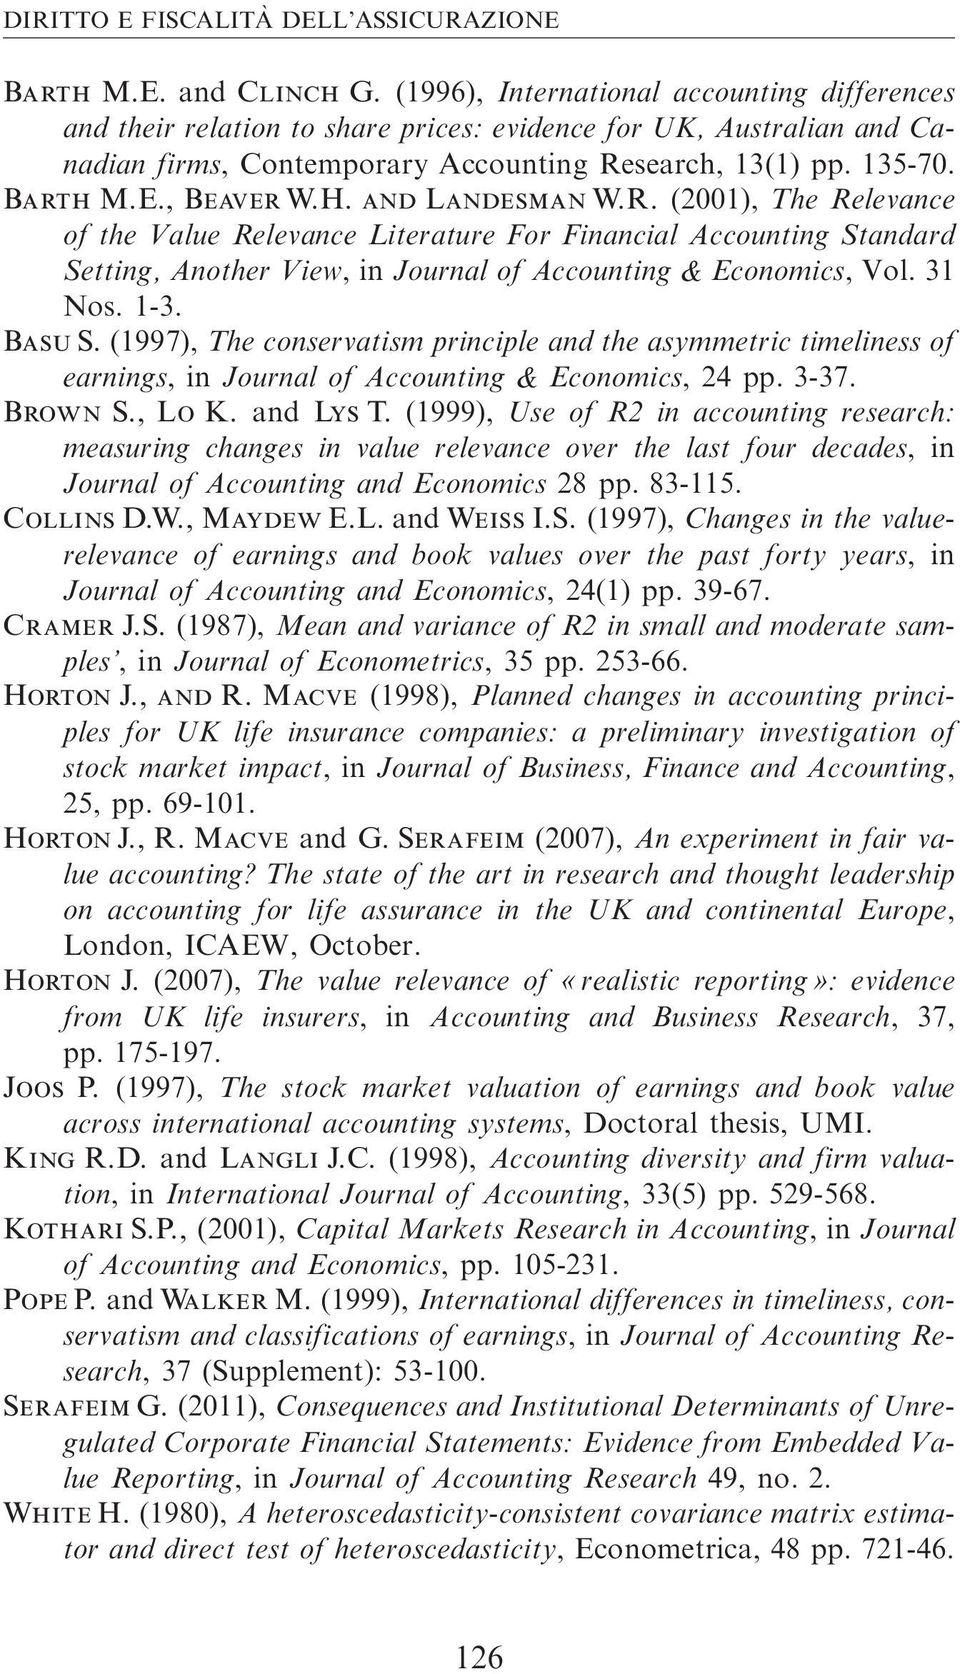 (2001), The Relevance of the Value Relevance Literature For Financial Accounting Standard Setting, Another View, injournal of Accounting & Economics, Vol.31 Nos. 1-3. Basu S.